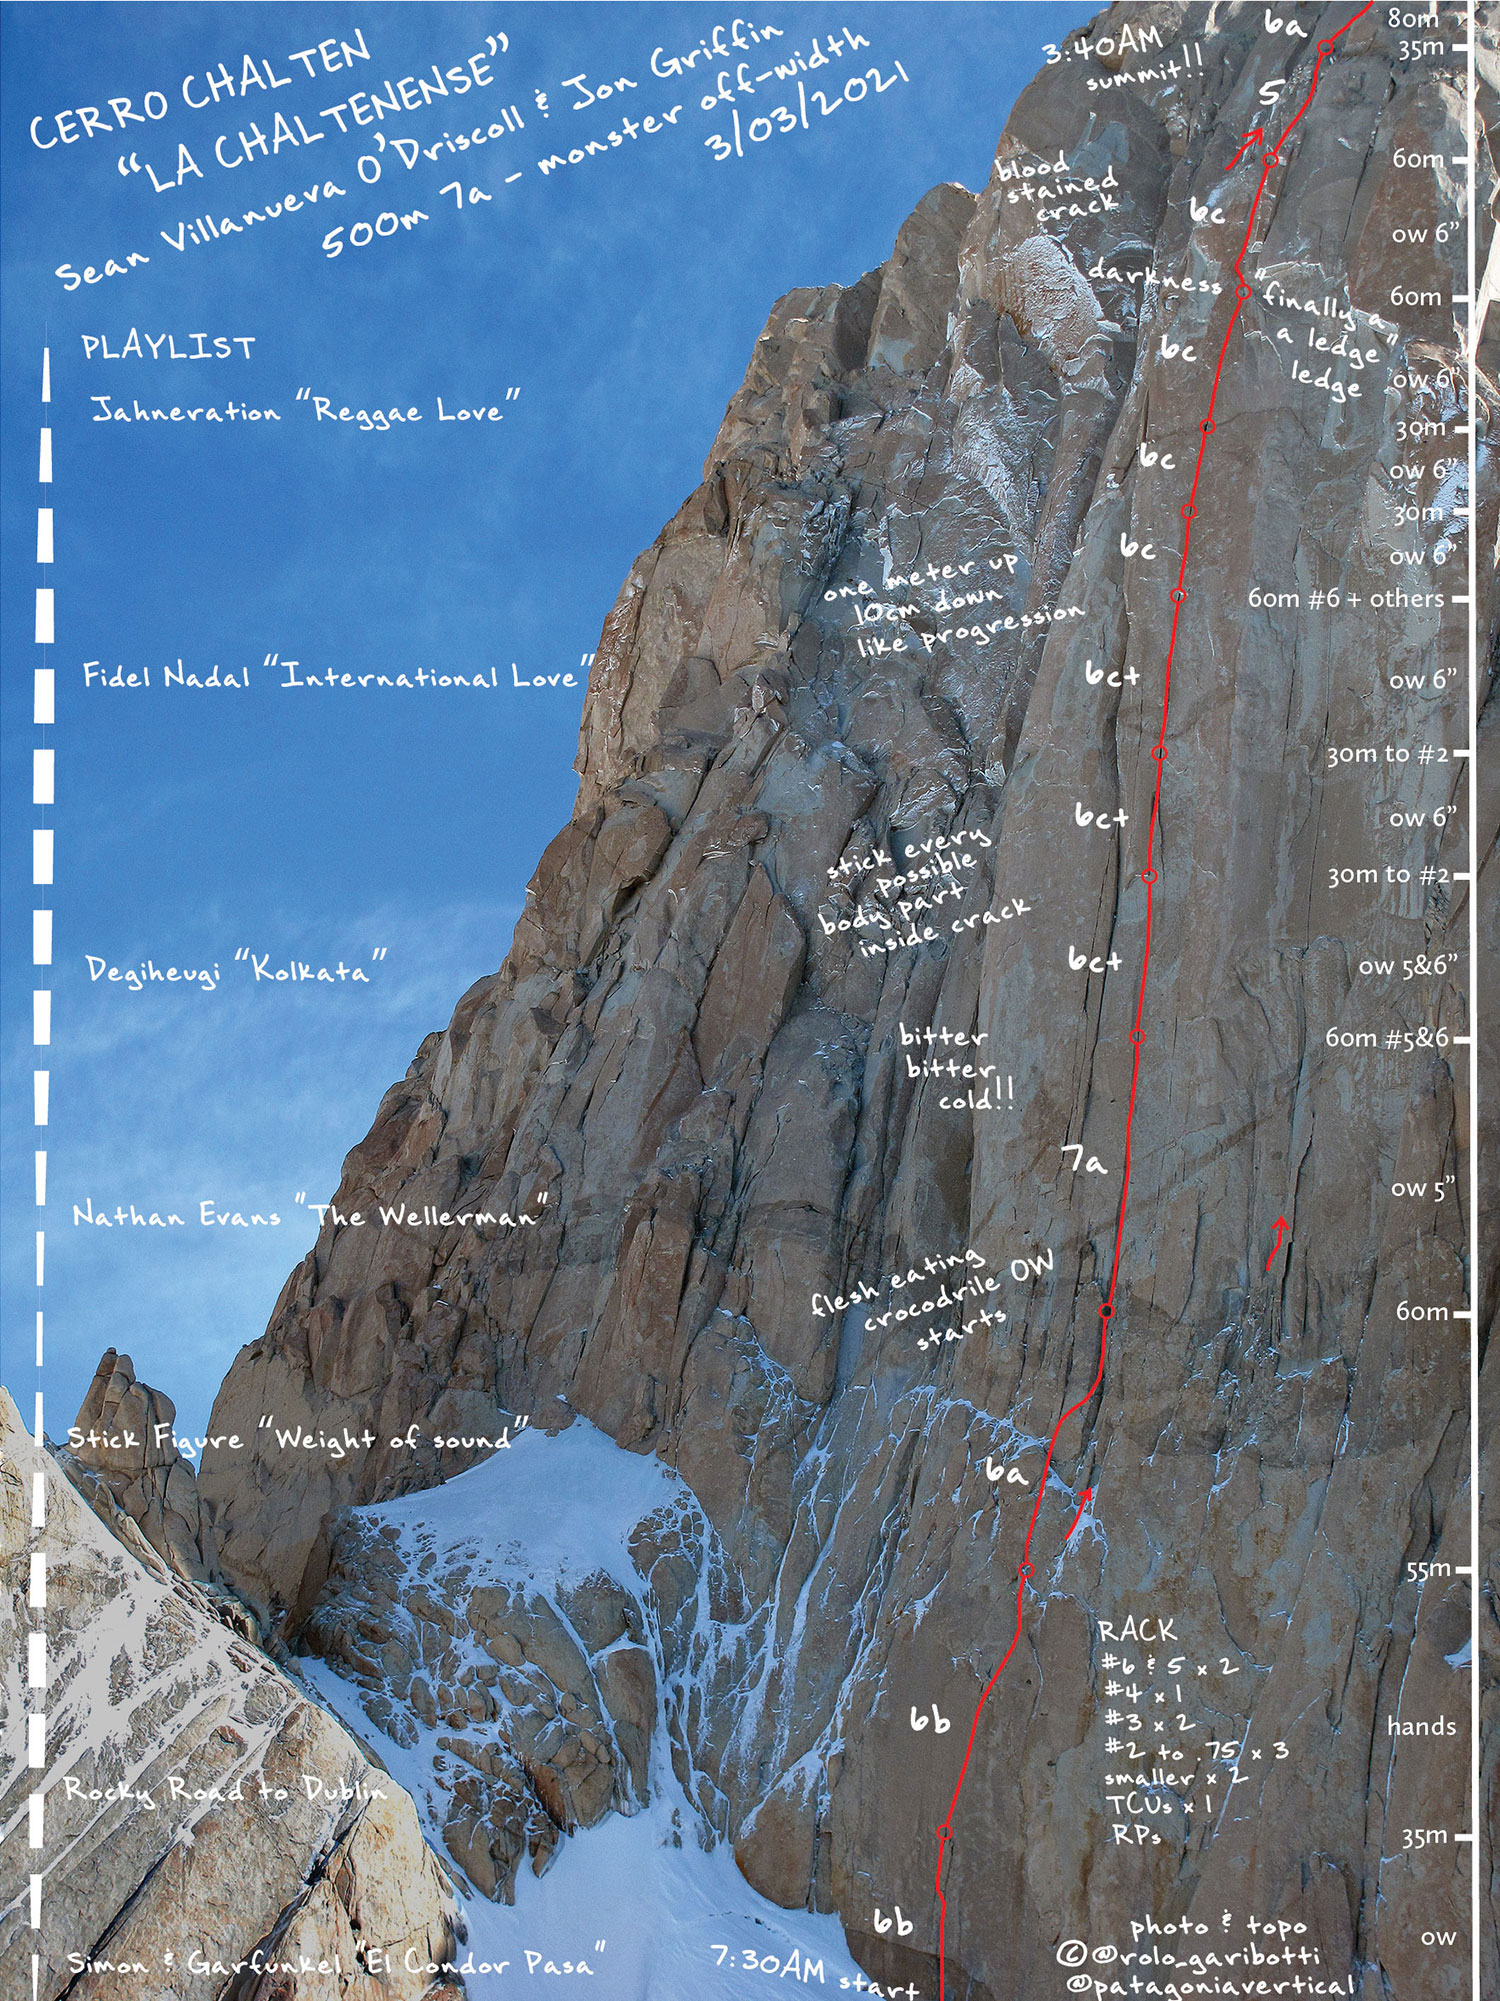 This copyrighted topo shows the route of La Chaltenense (5.11+, 500m) on Fitz Roy. The playlist of songs on the left corresponds to the pitches where they were played. Patagonia guidebook author (and creator of this image) Rolando Garibotti said he came up with the idea after learning that first ascensionist Jon Griffin had carried speakers and played music on almost every pitch. [Image] © Rolando Garibotti @rolo_garibotti @patagoniavertical